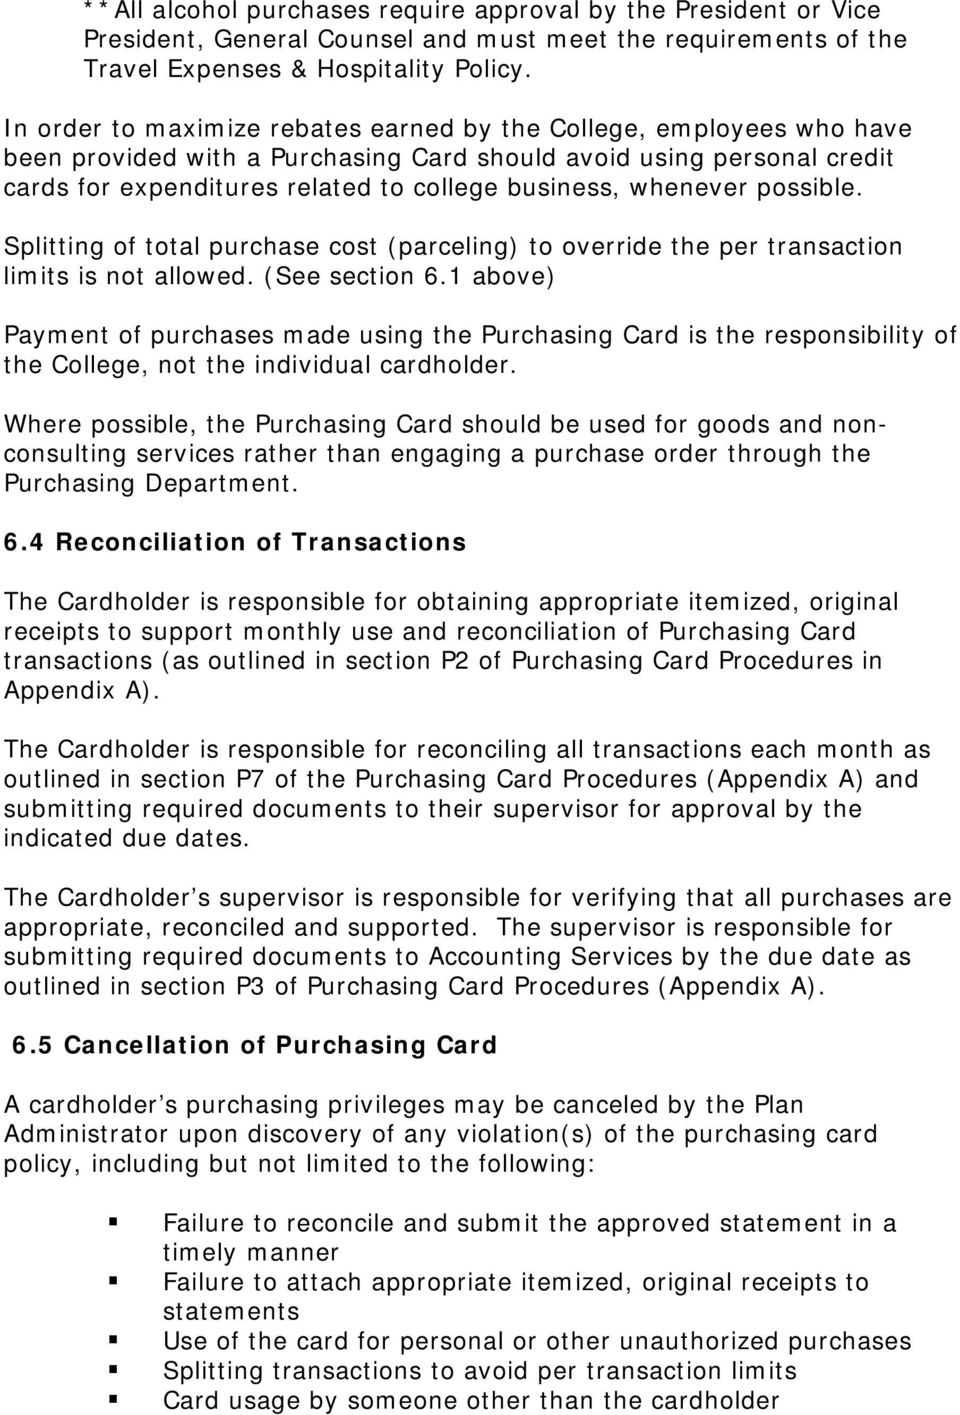 whenever possible. Splitting of total purchase cost (parceling) to override the per transaction limits is not allowed. (See section 6.